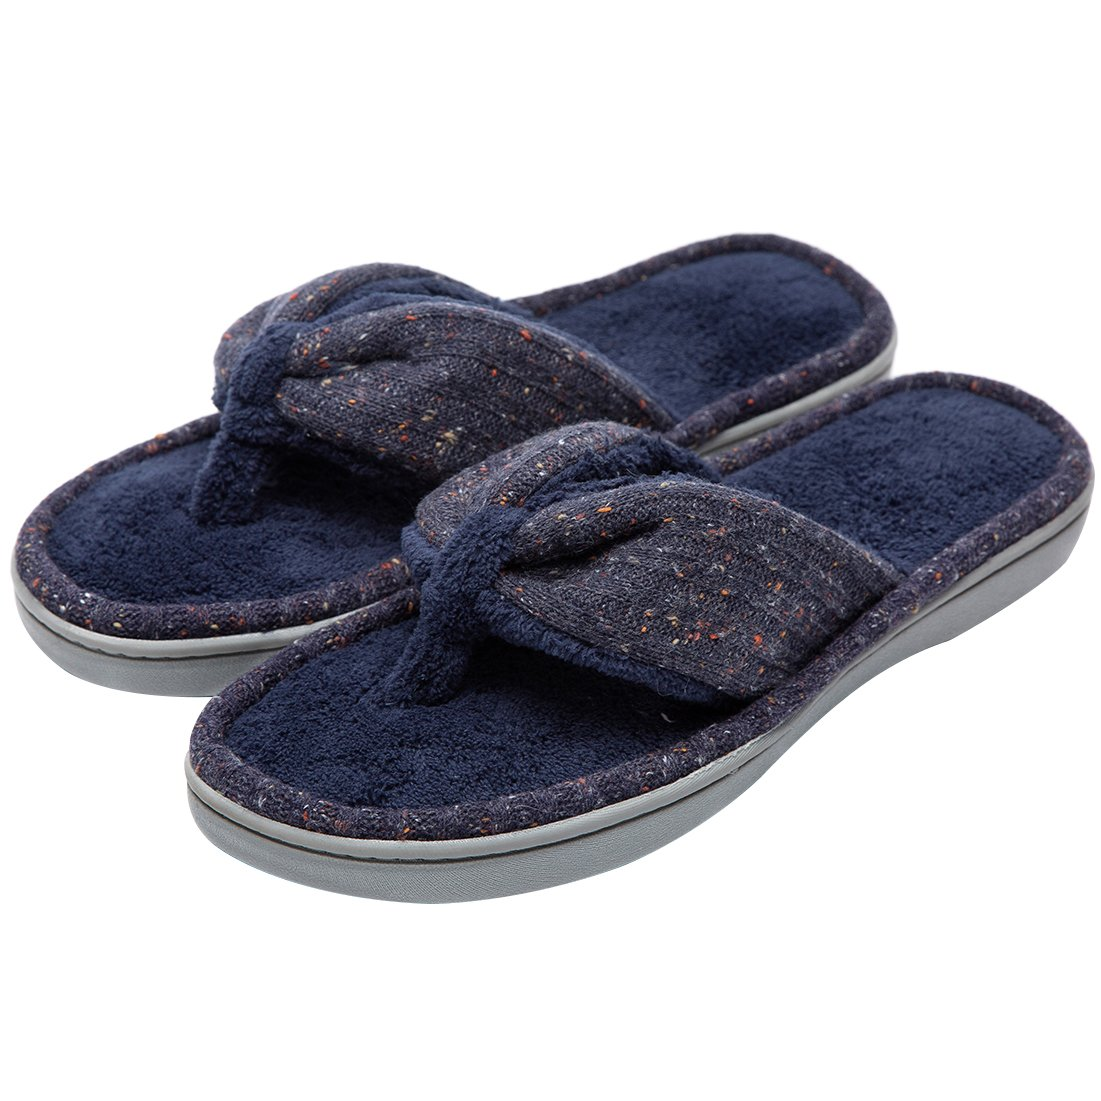 Women's Soft & Comfy Knitted Plush Fleece Lining Memory Foam Spa Thong Flip Flops House Slippers (Large/9-10 B(M) US, Navy Blue)